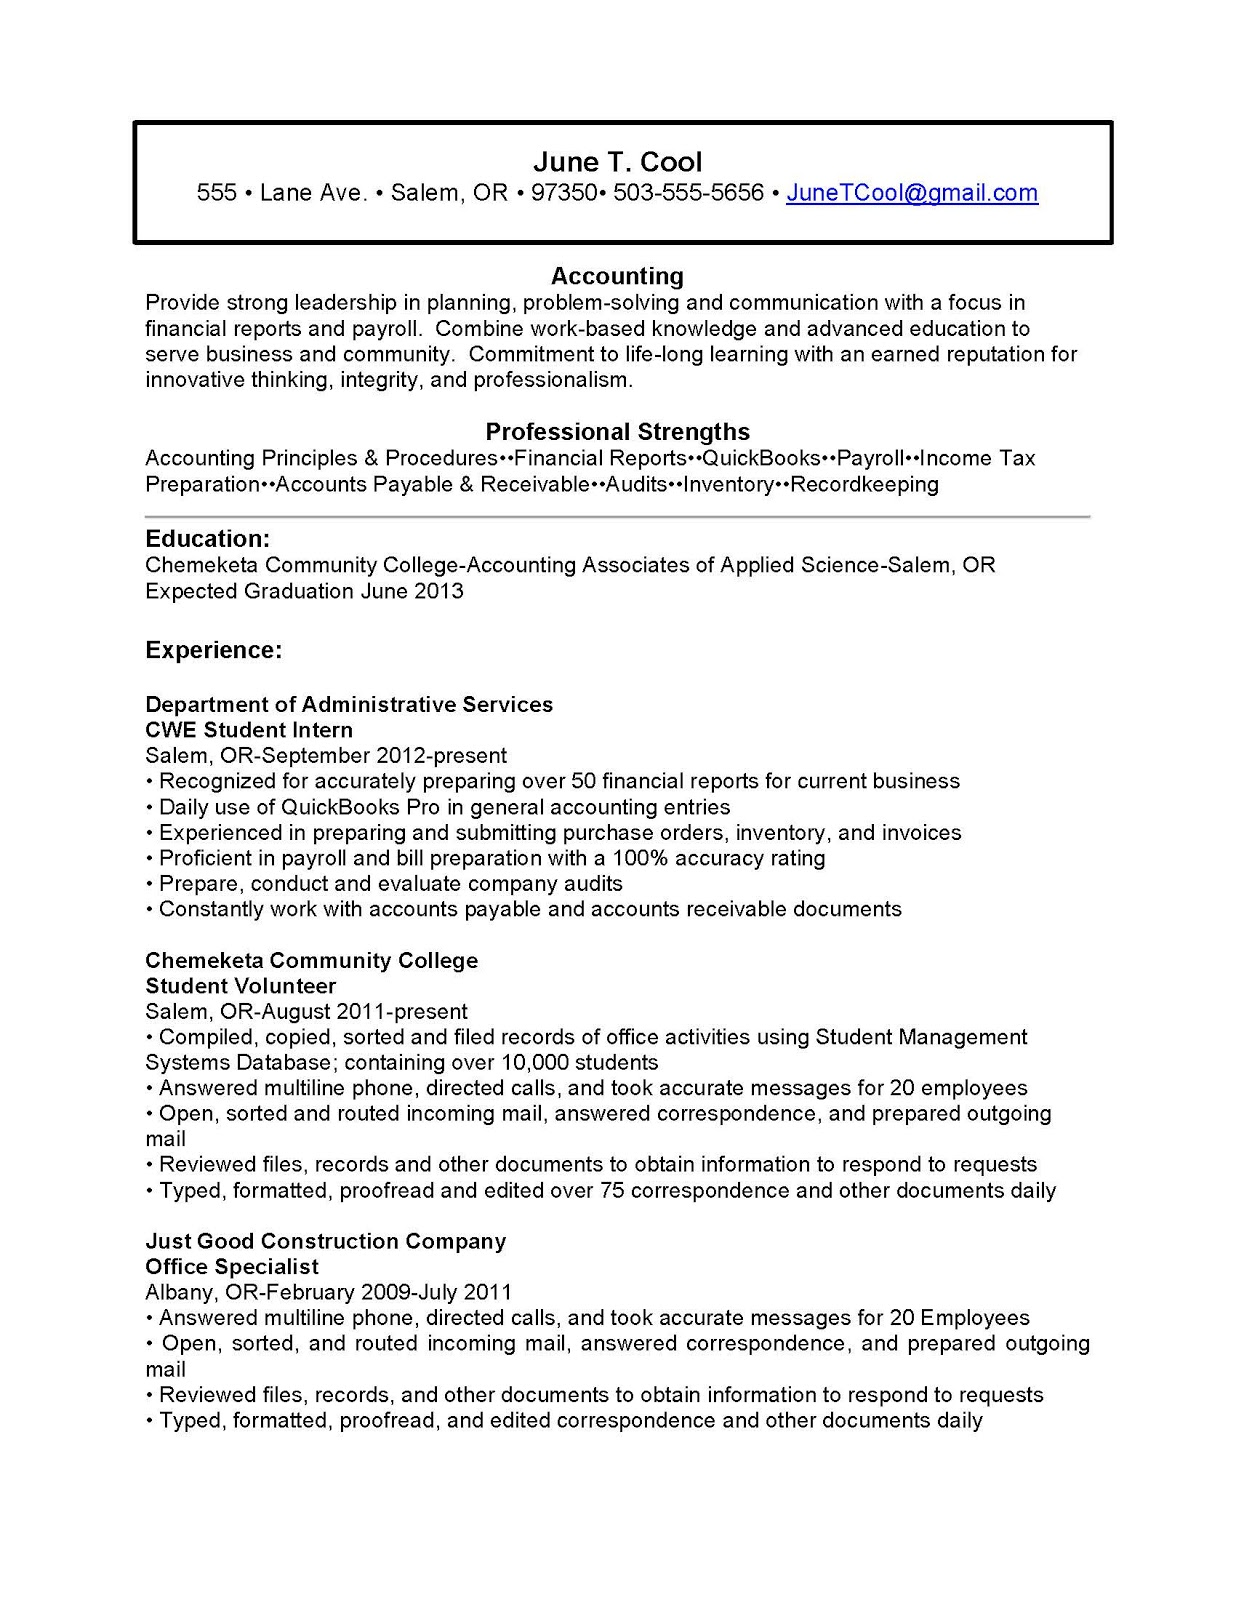 resume What Is A Chronological Resume chronological resume objective best ideas about template on pinterest